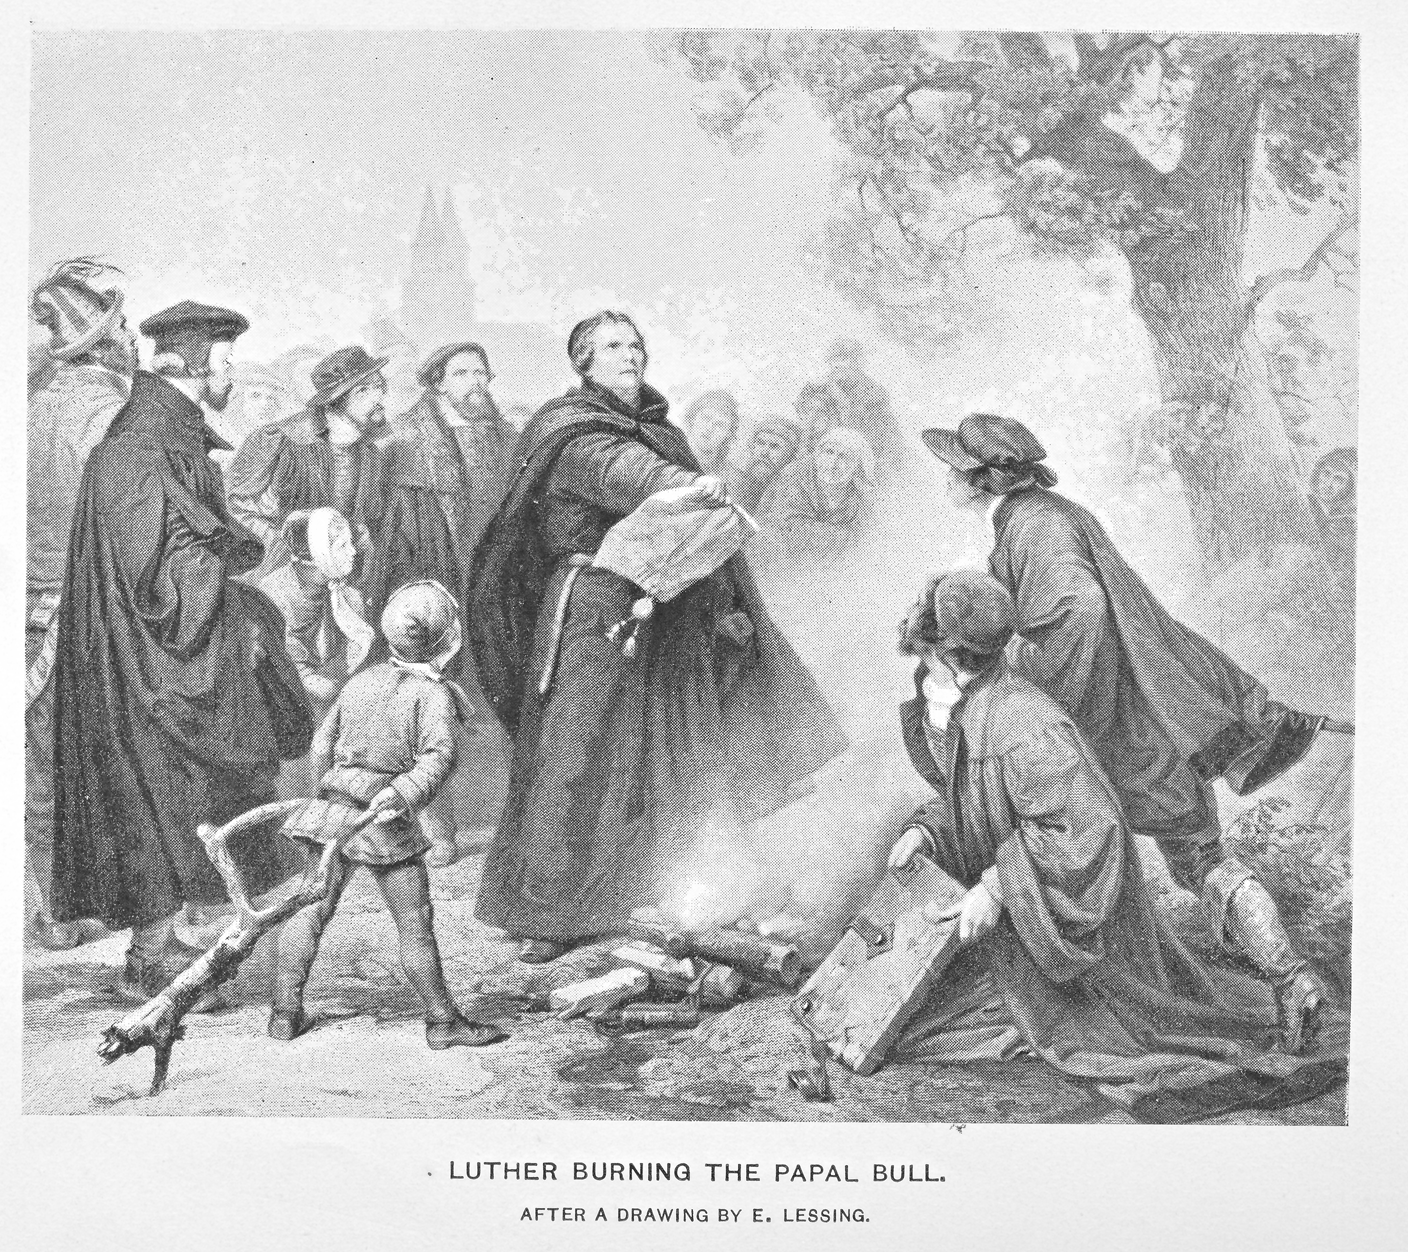 an analysis of the burning of martin luthers books Those burning books as an act of censorship on ideological from the early arabic and hebrew versions to the time of martin luther this made book burning.